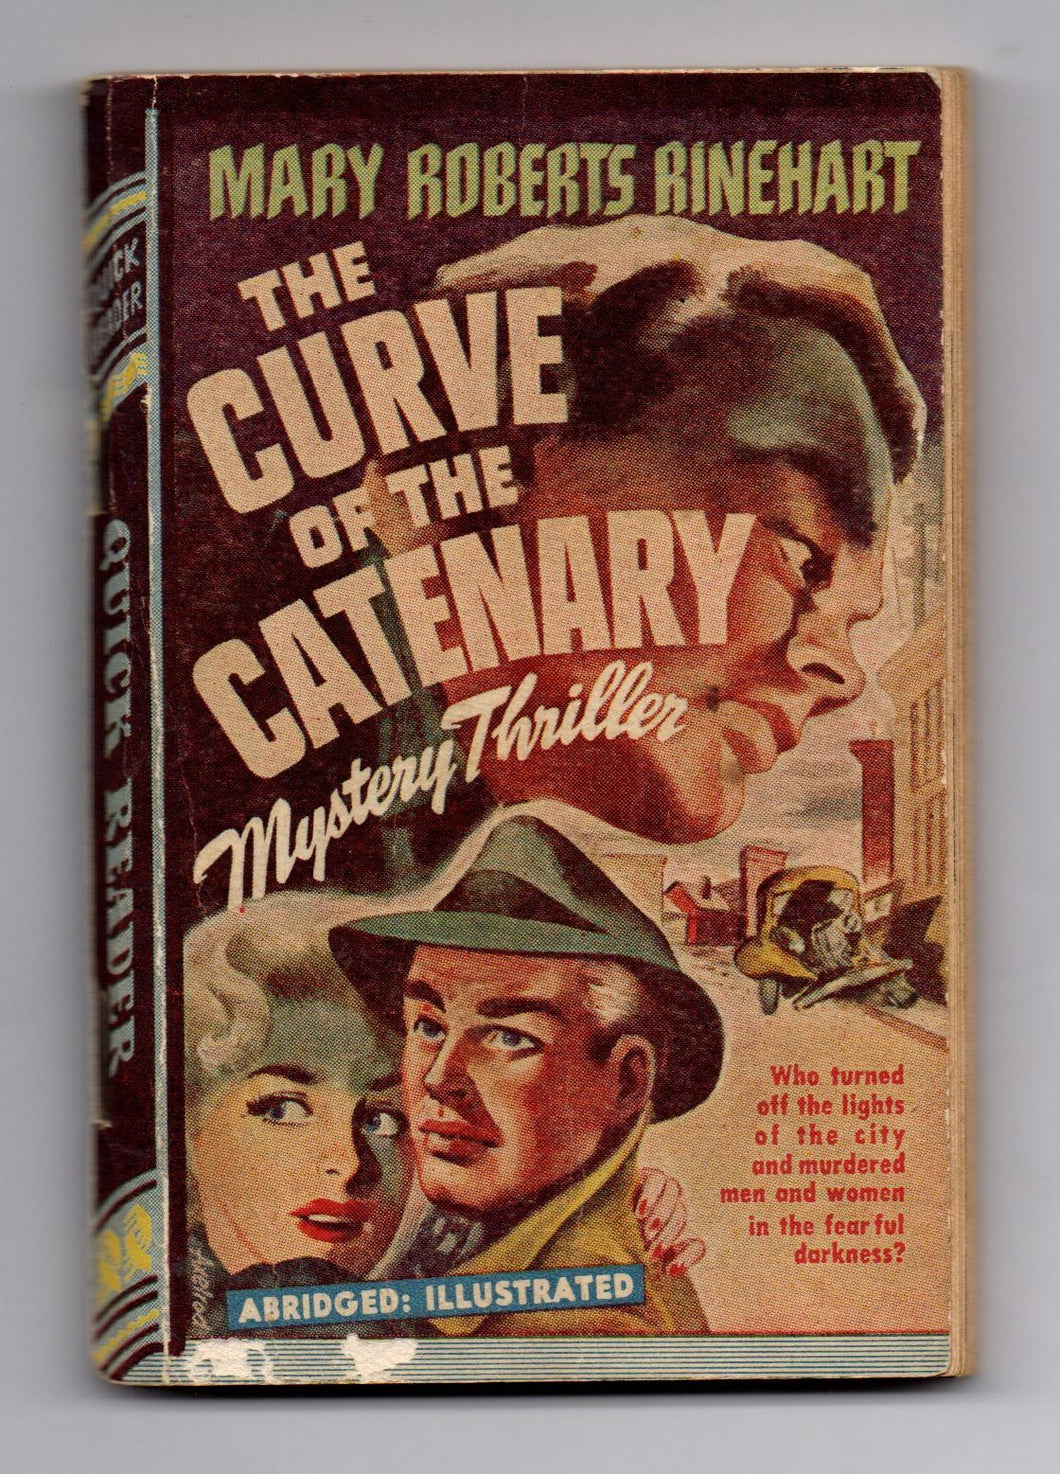 The Curve of the Catenary